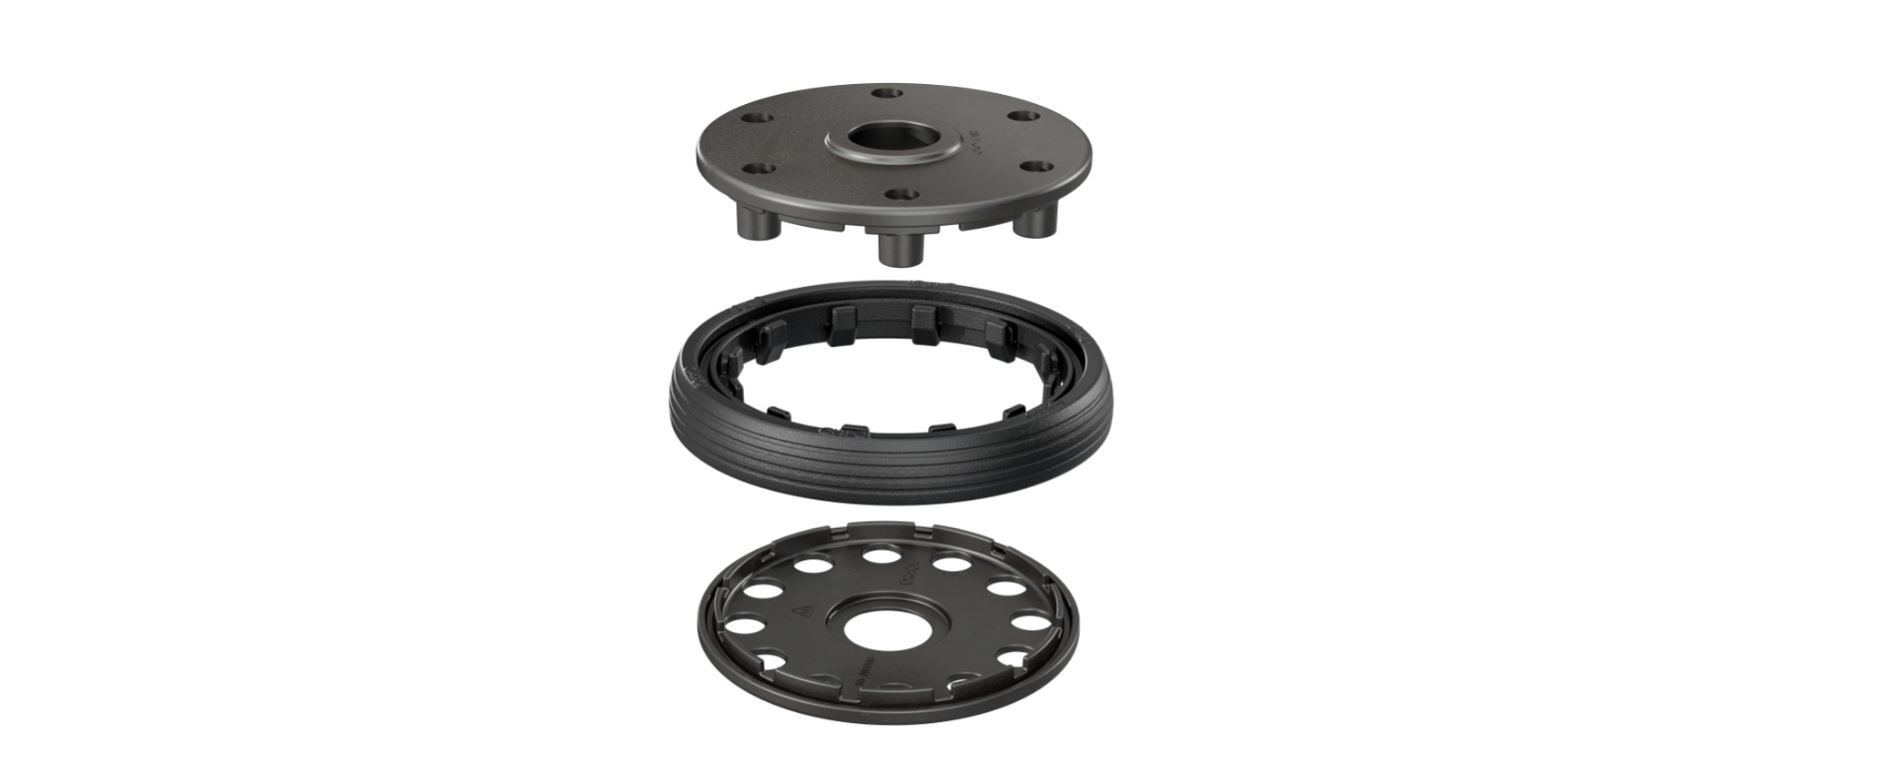 New Onspot Chain Wheel construction wide